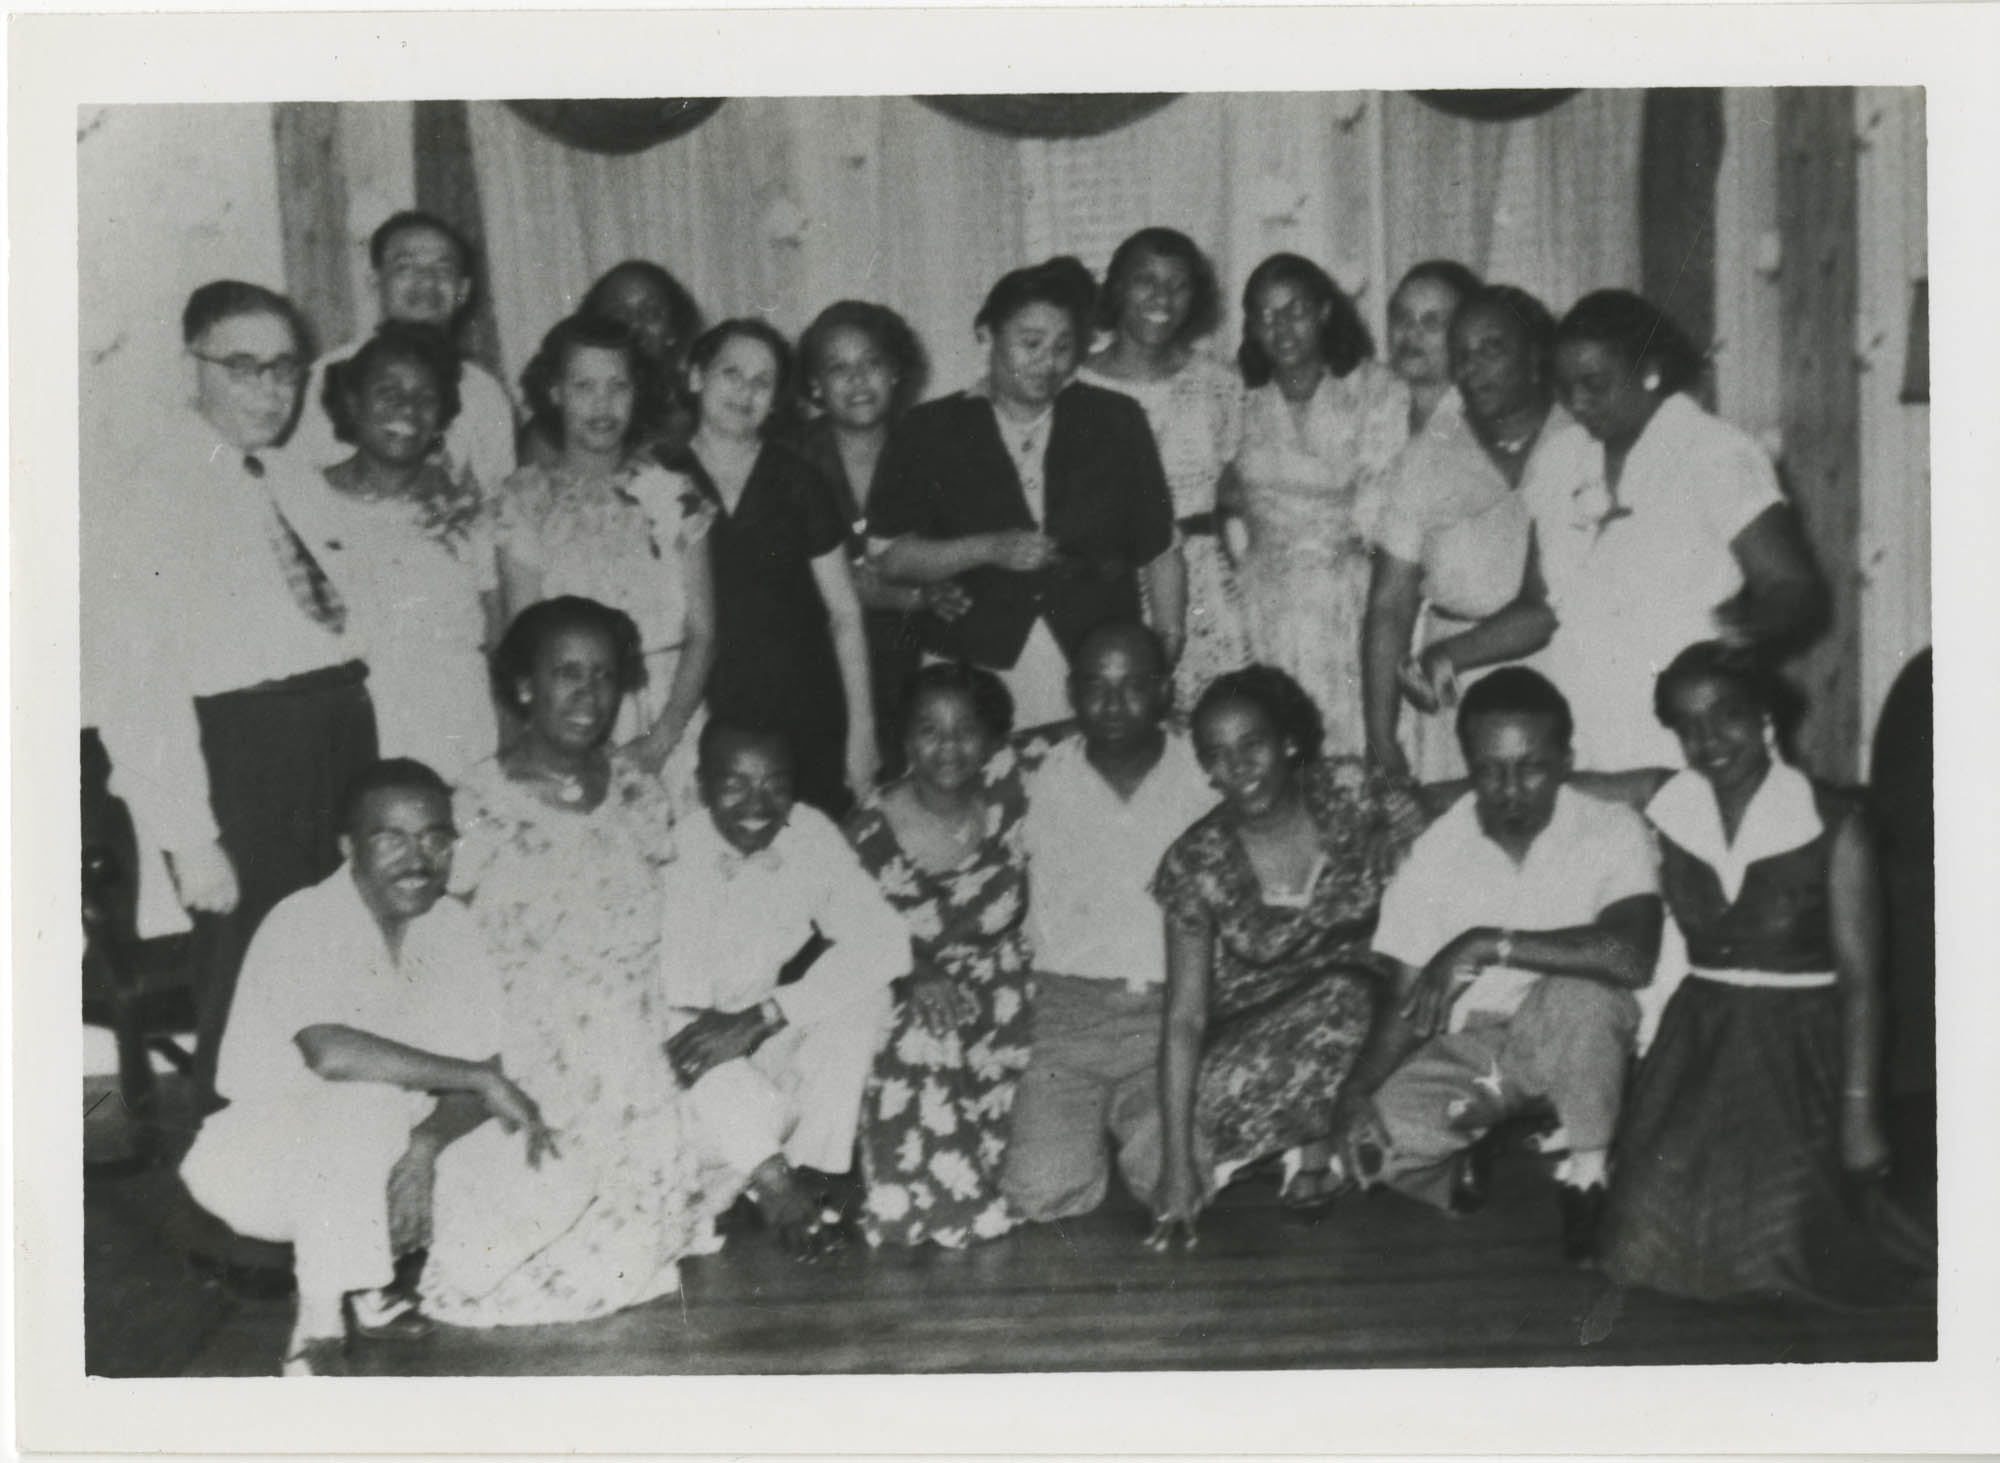 Photograph of a Group of People